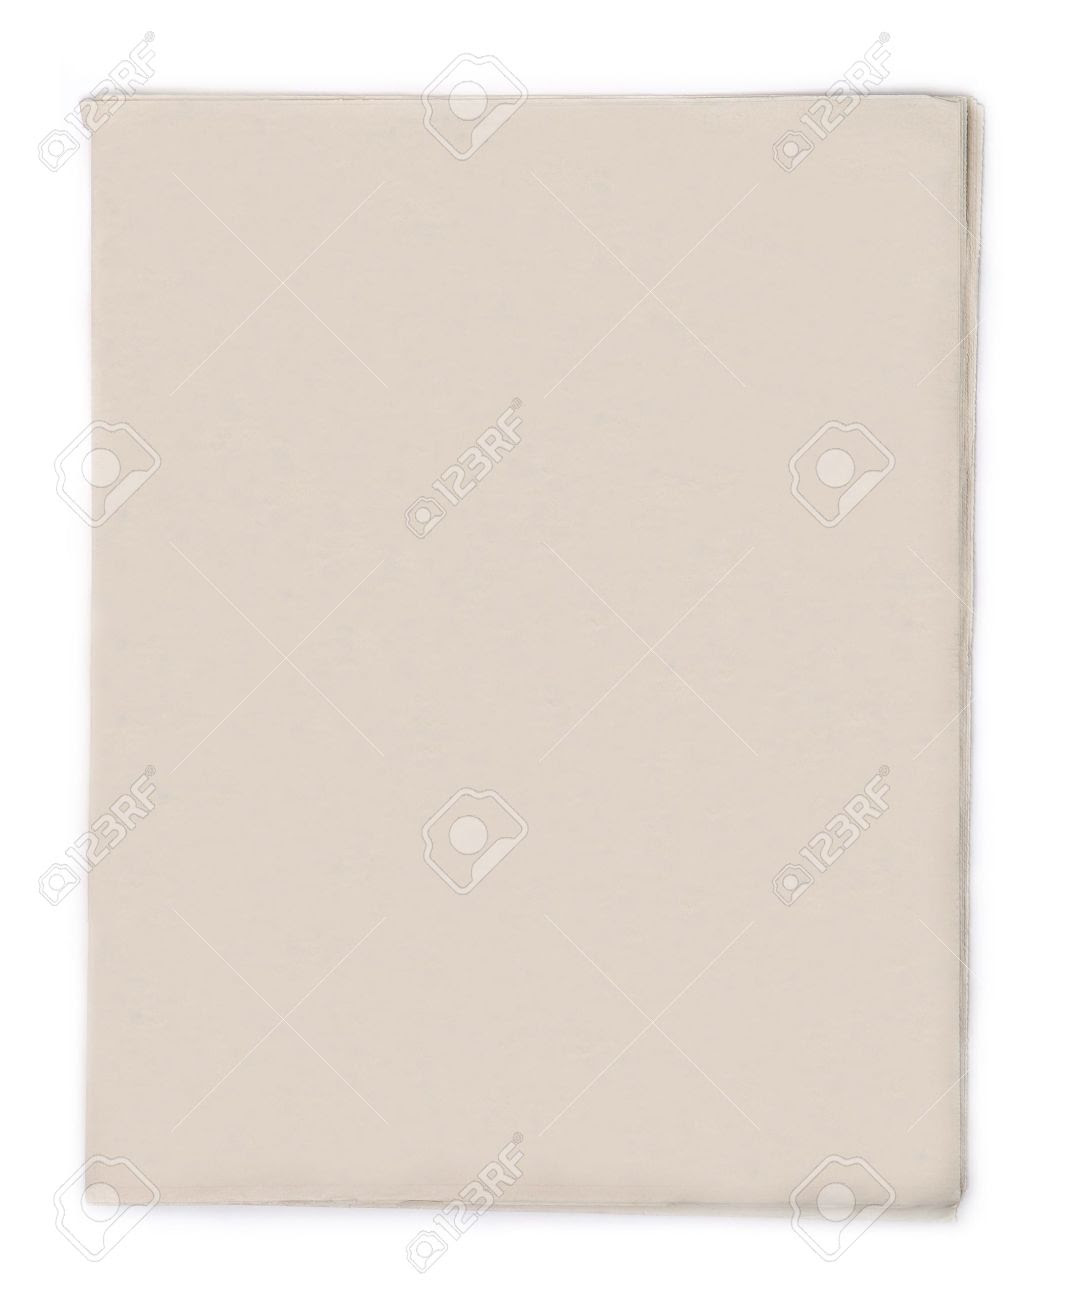 Blank Newspaper Stock Photo, Picture And Royalty Free Image. Image ...